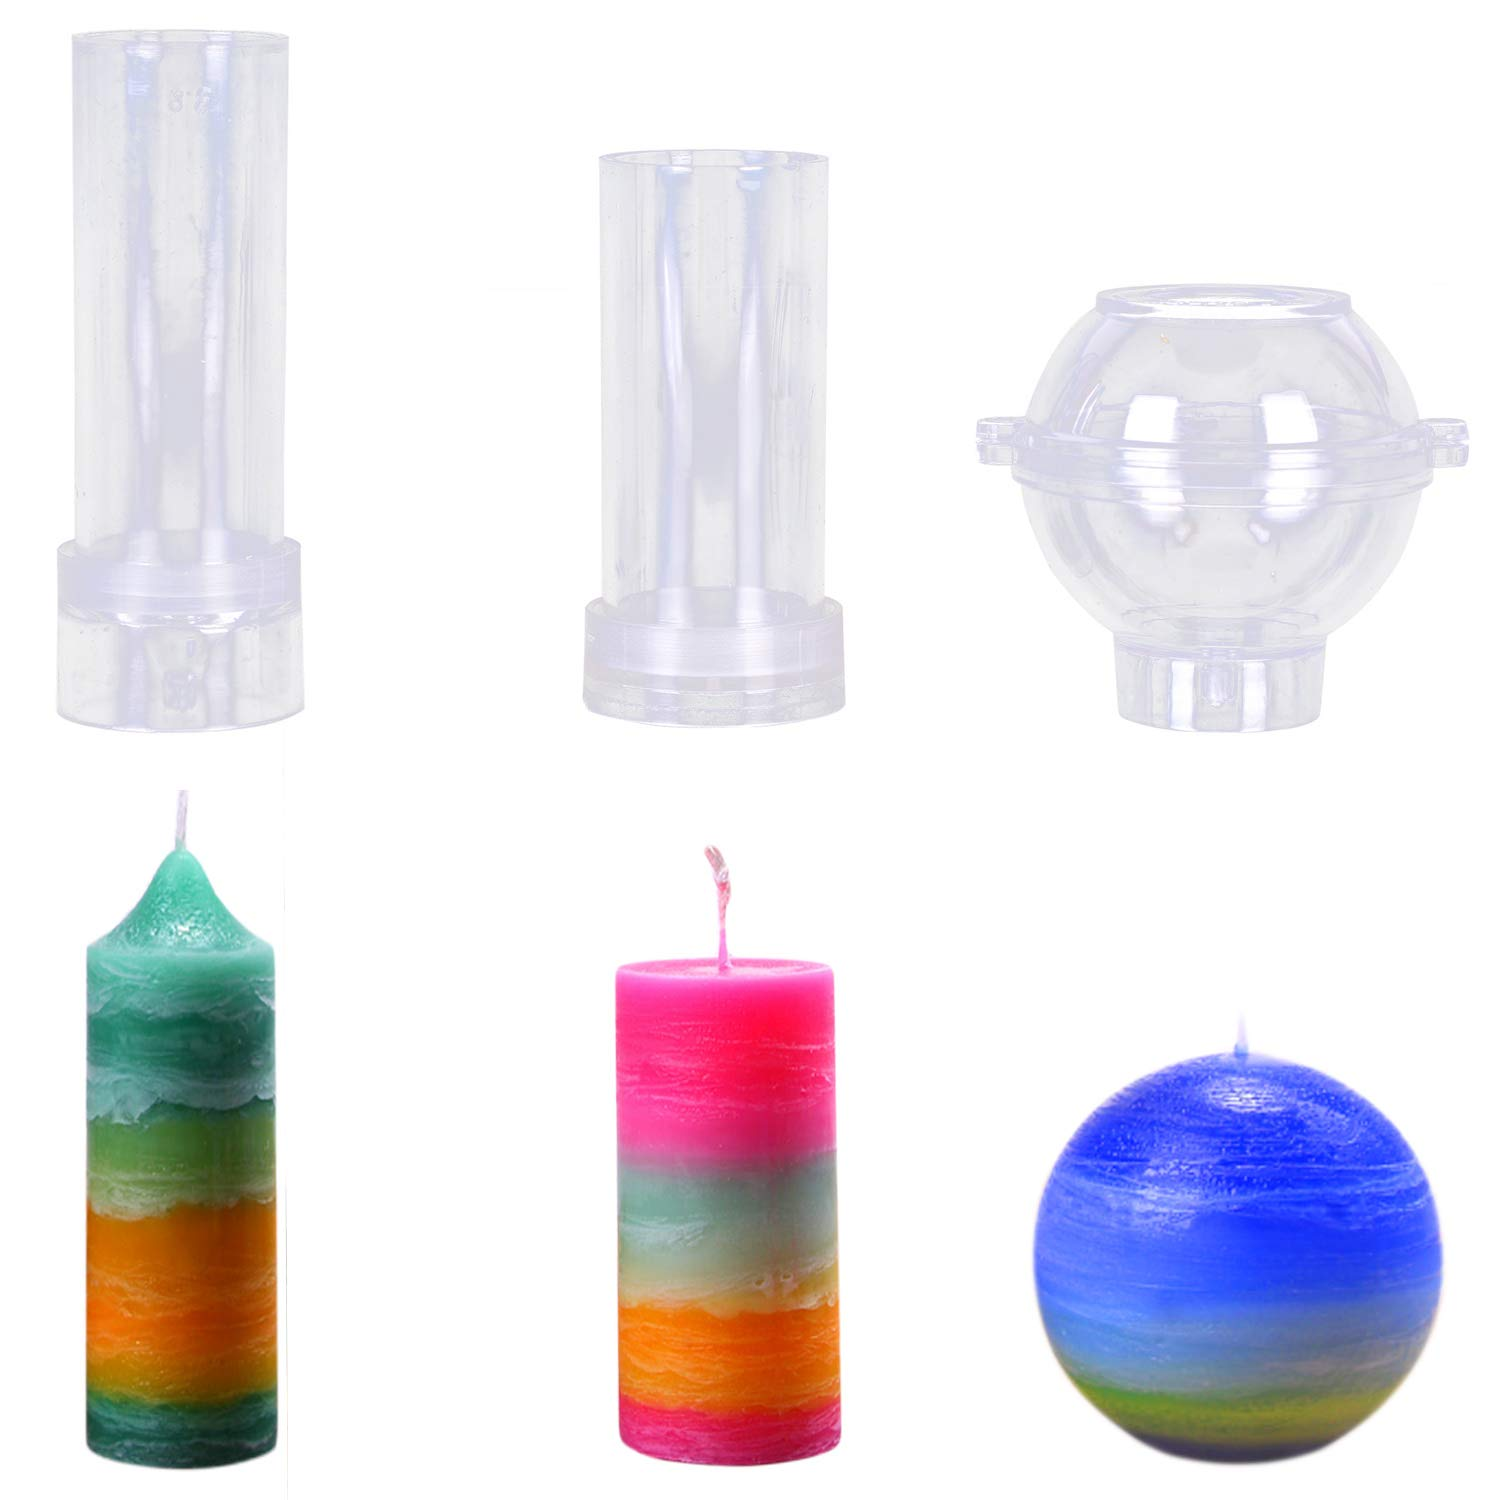 MeiMeiDa Plastic Candle Molds for Candle Making Set of 3 - Including Pillar Mold, Cylinder Mold and Sphere Mold - Make Your Own Candles - Great for DIY Homemade Candles